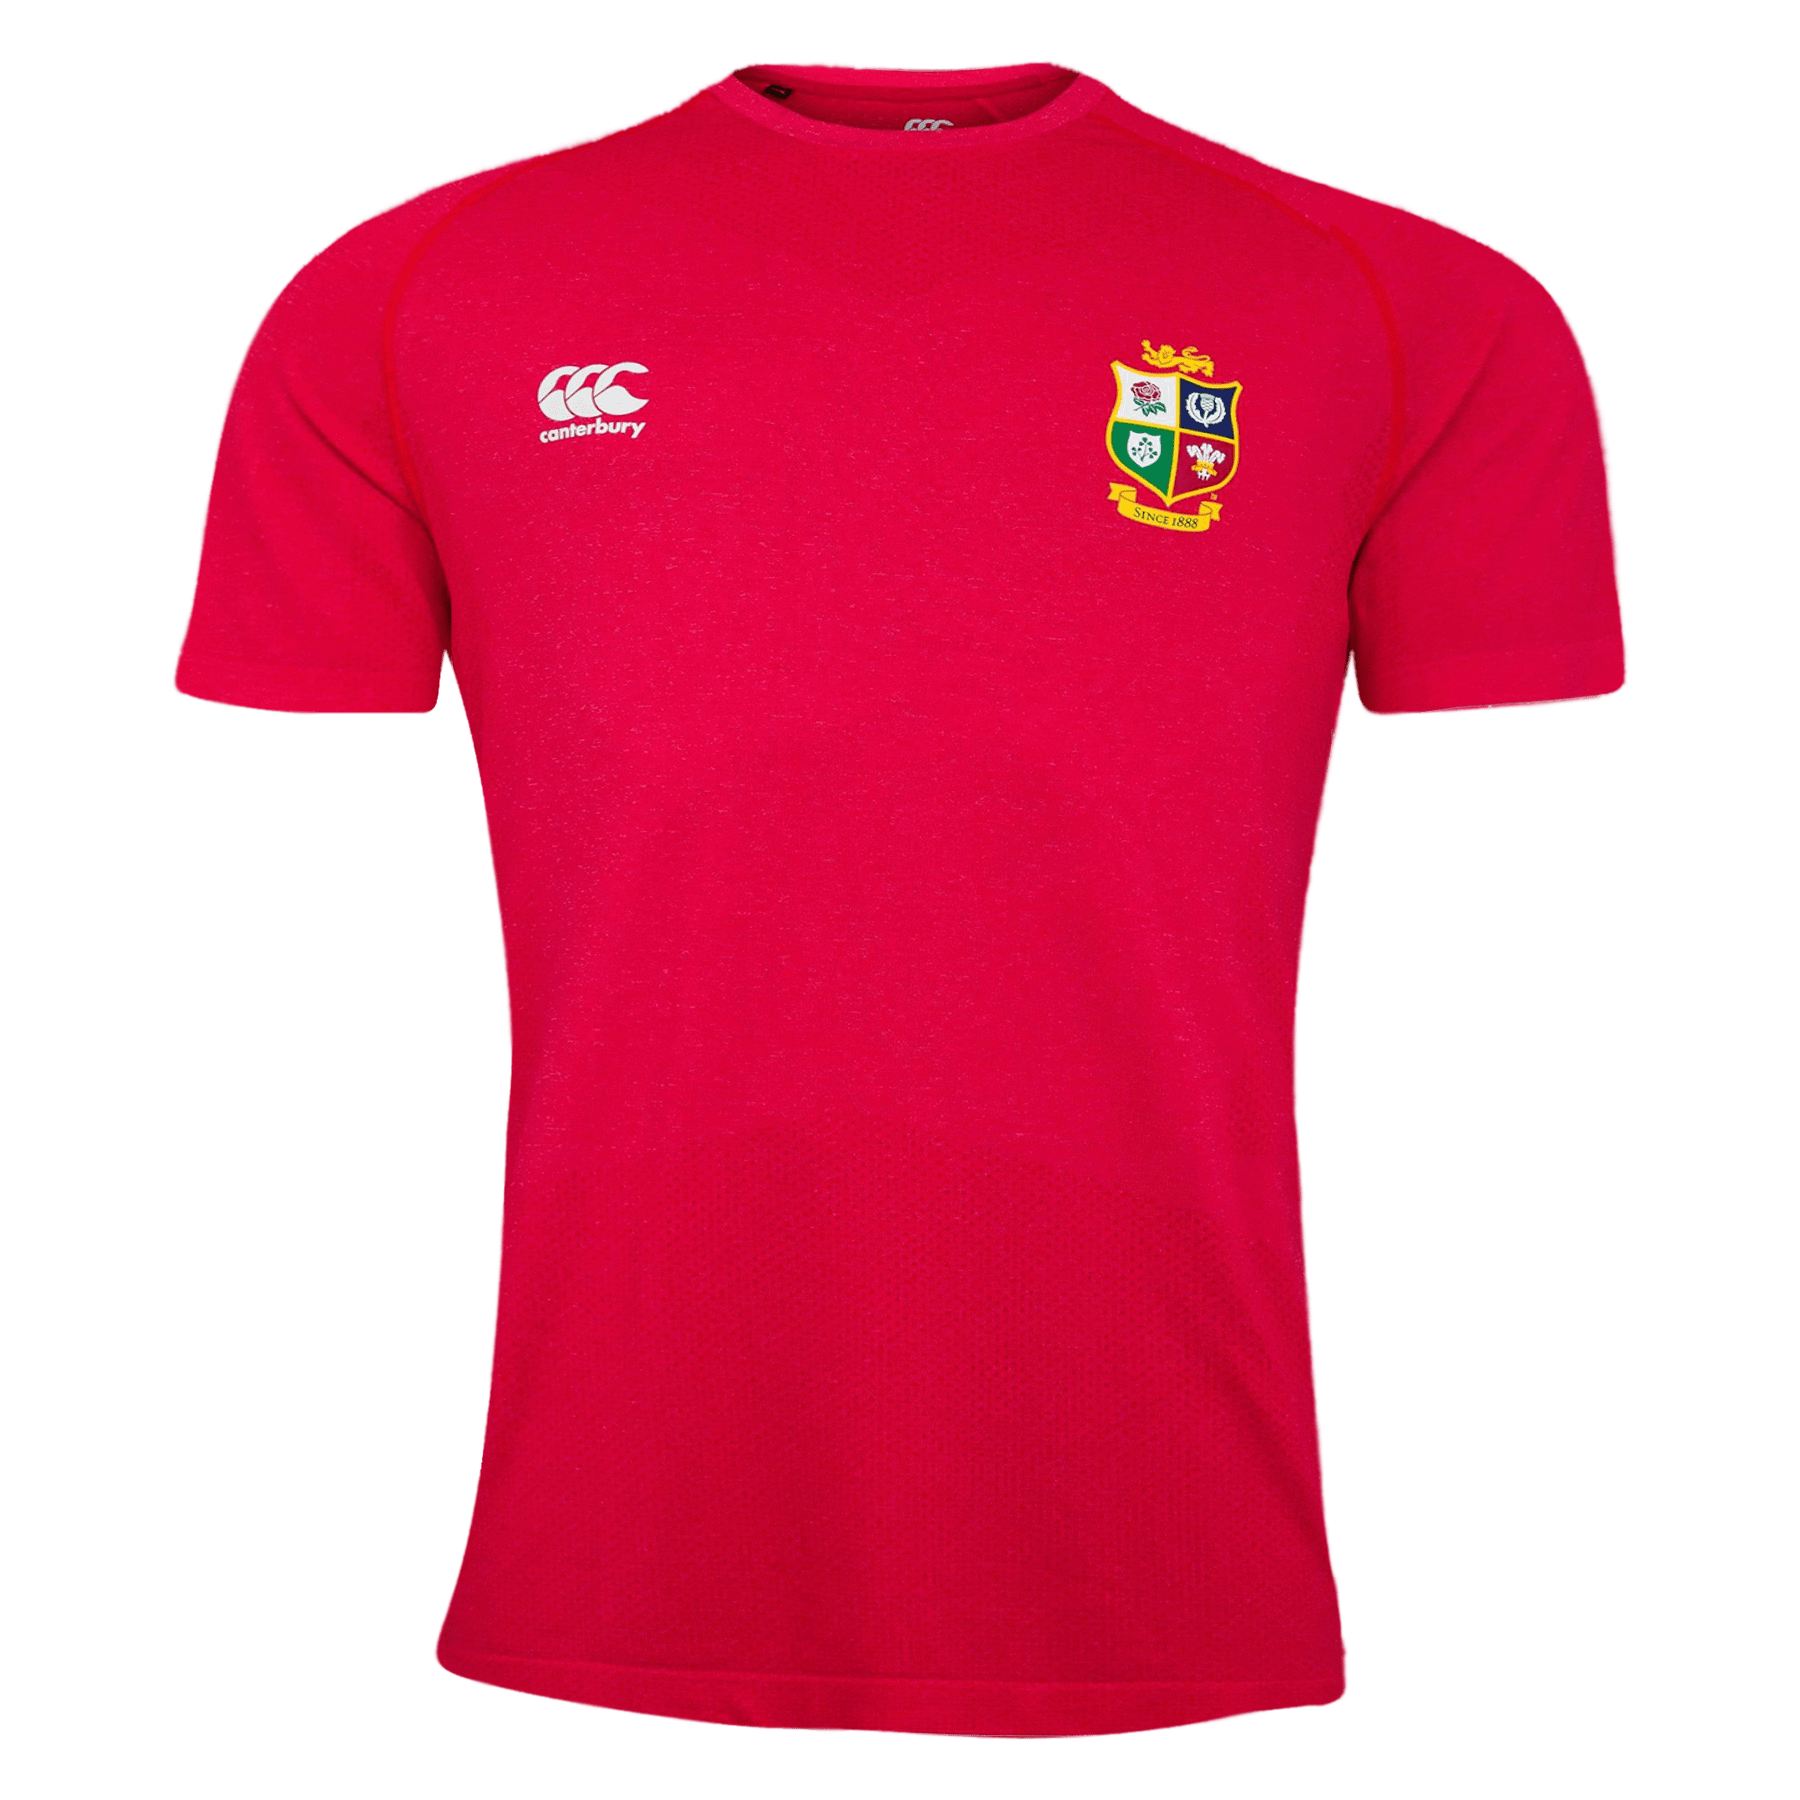 British and Irish Lions Rugby Red Cotton T-Shirt